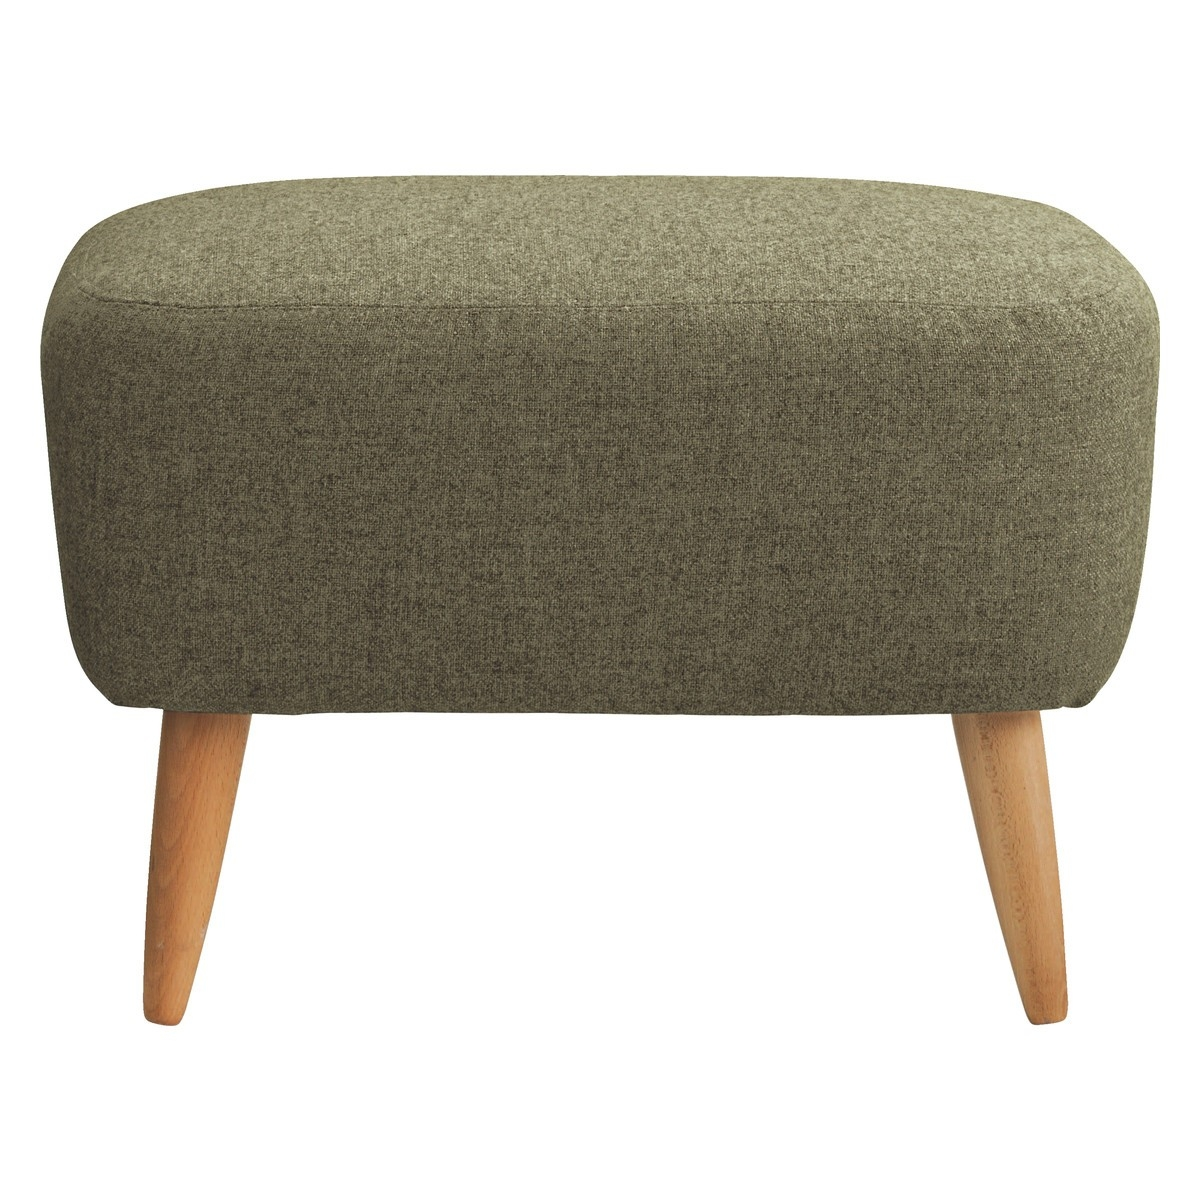 Wilmot Green Wool Mix Footstool Buy Now At Habitat Uk With Regard To Fabric Footstools (Image 15 of 15)